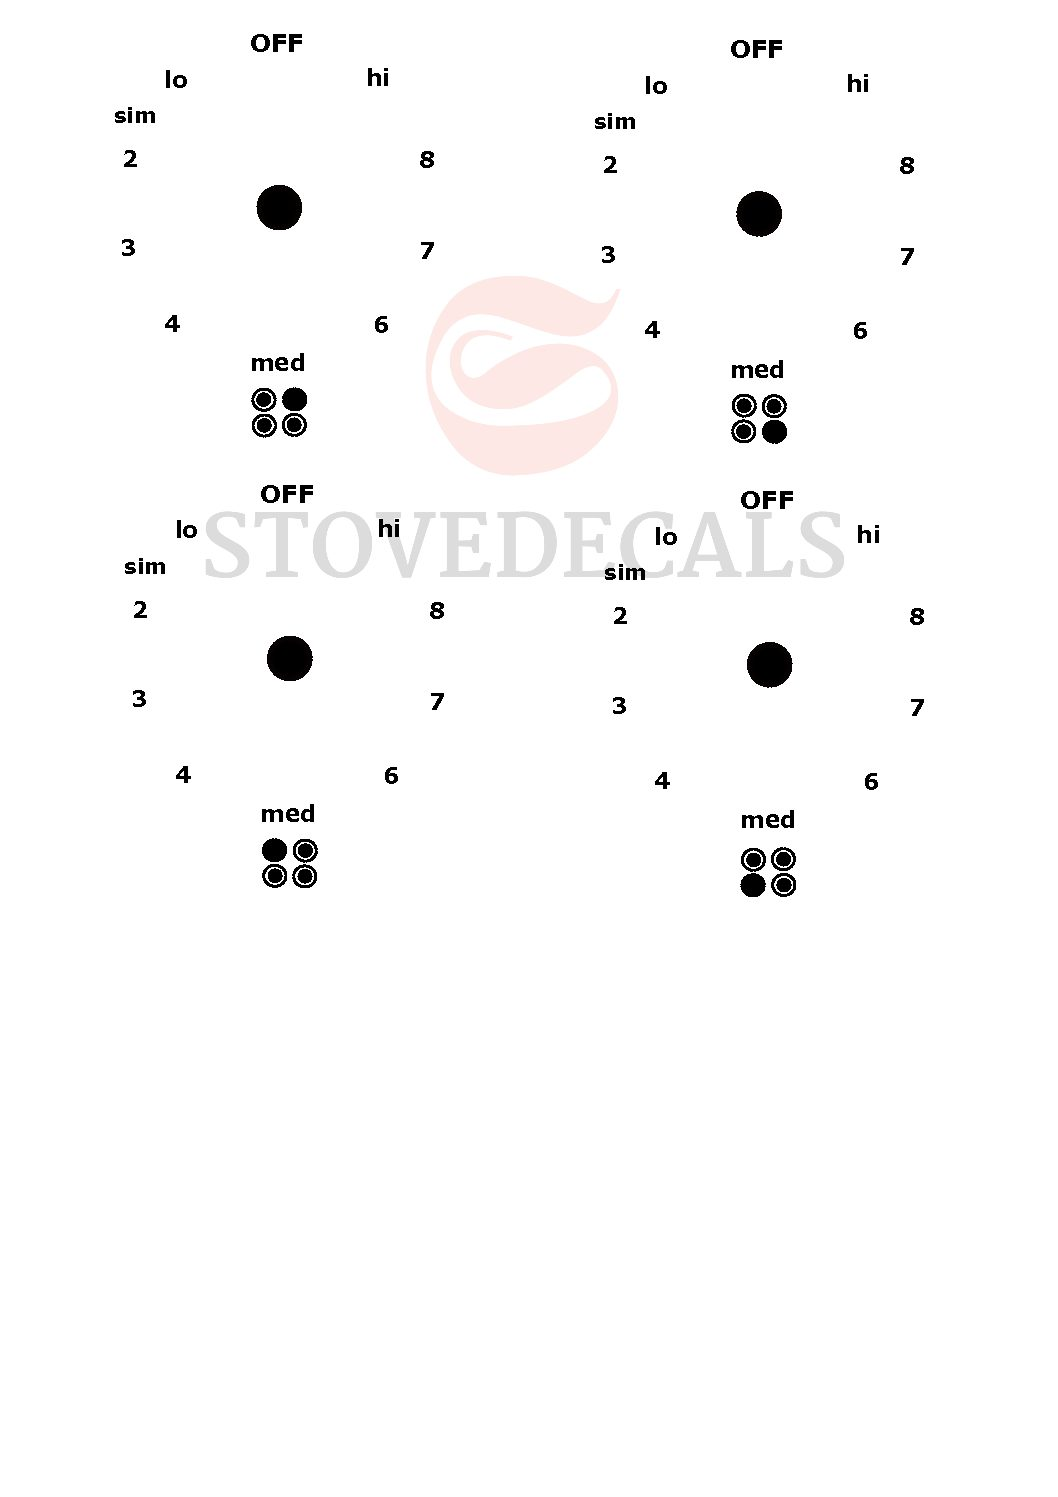 Frigidaire Stove Decals for Replacing Worn Off Frigidaire Stove Labels